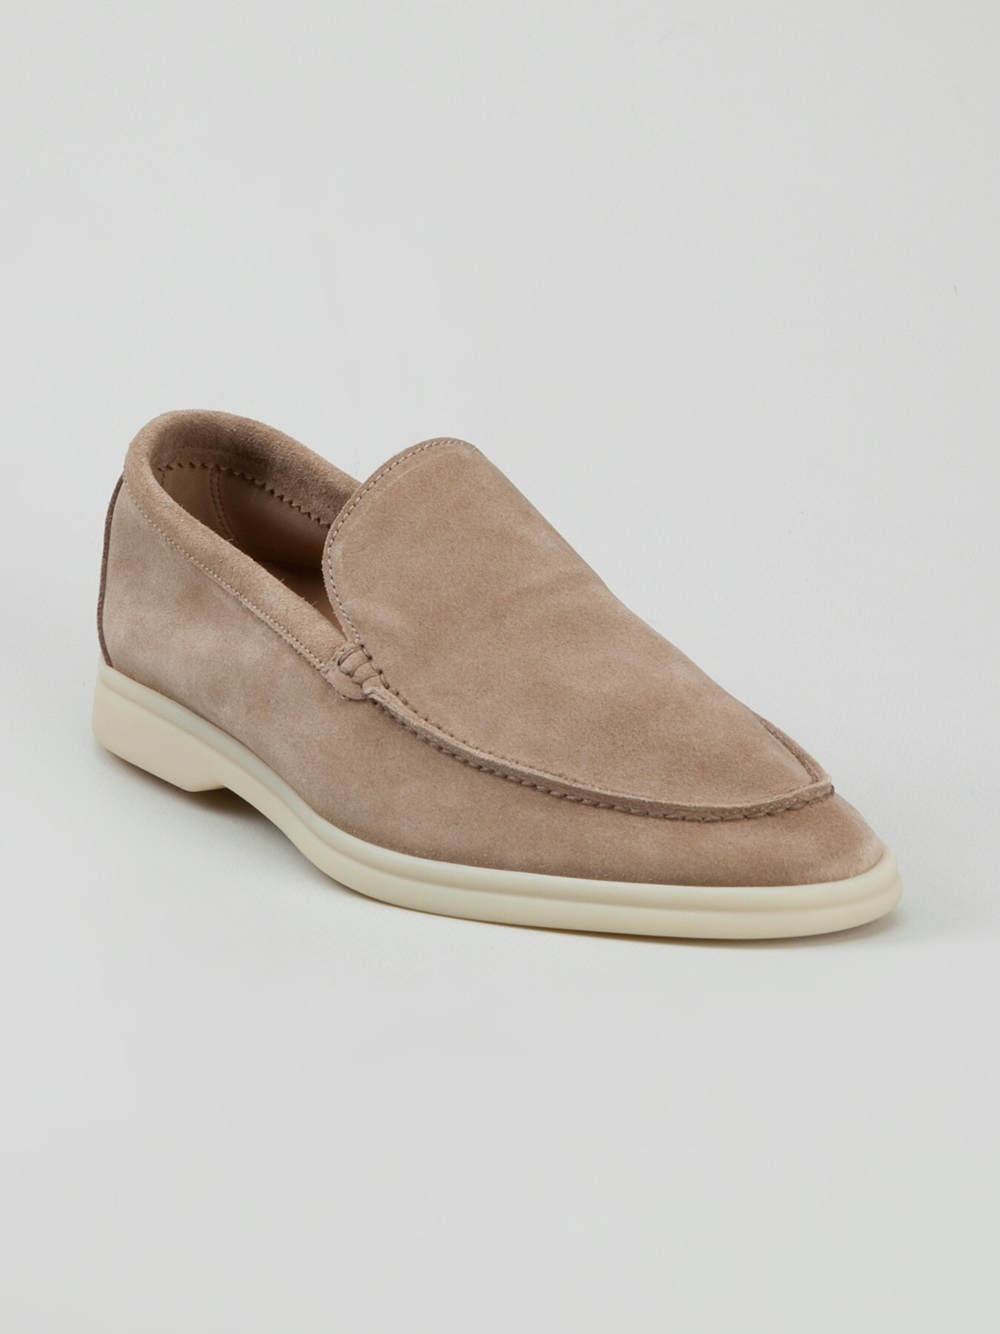 Loro Piana Casual Loafer In Natural For Men Lyst